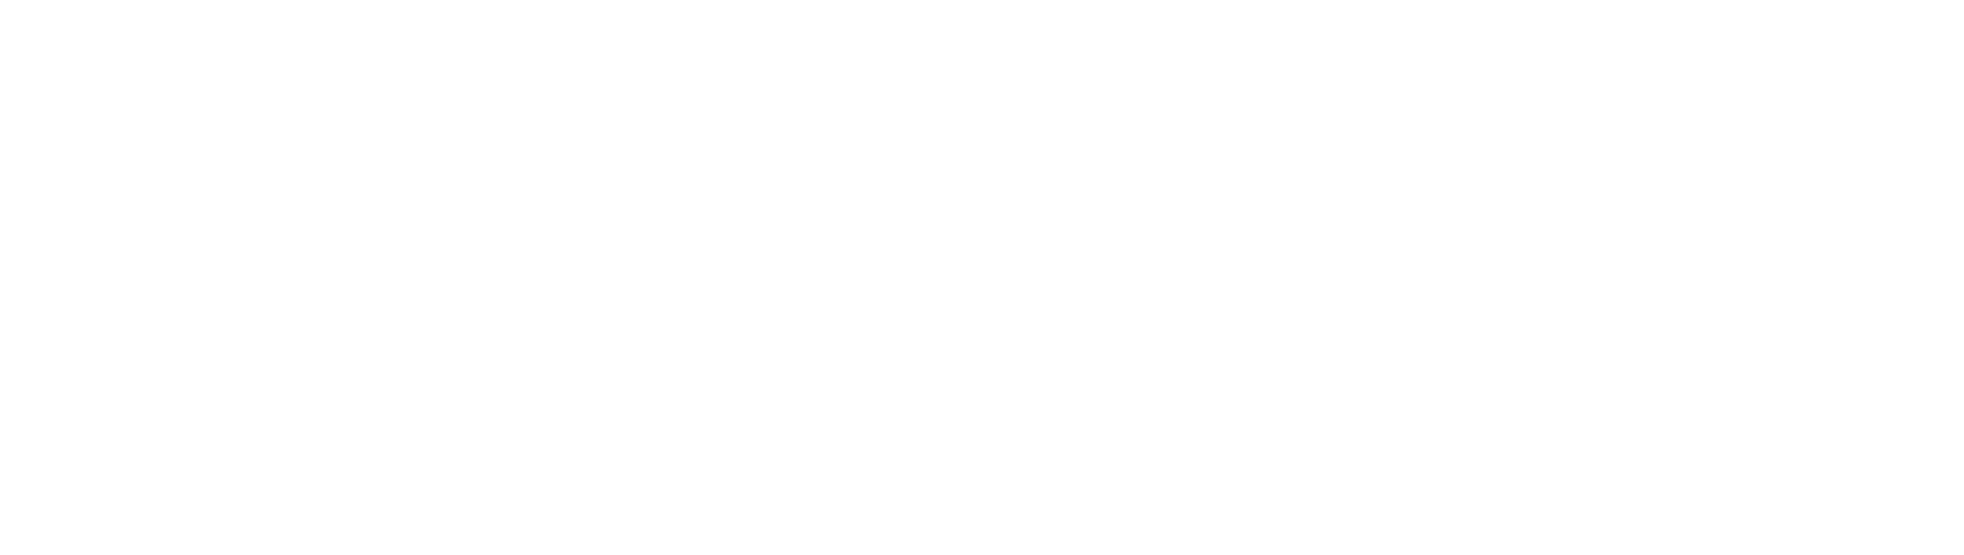 United Country Midwest Lifestyle Properties